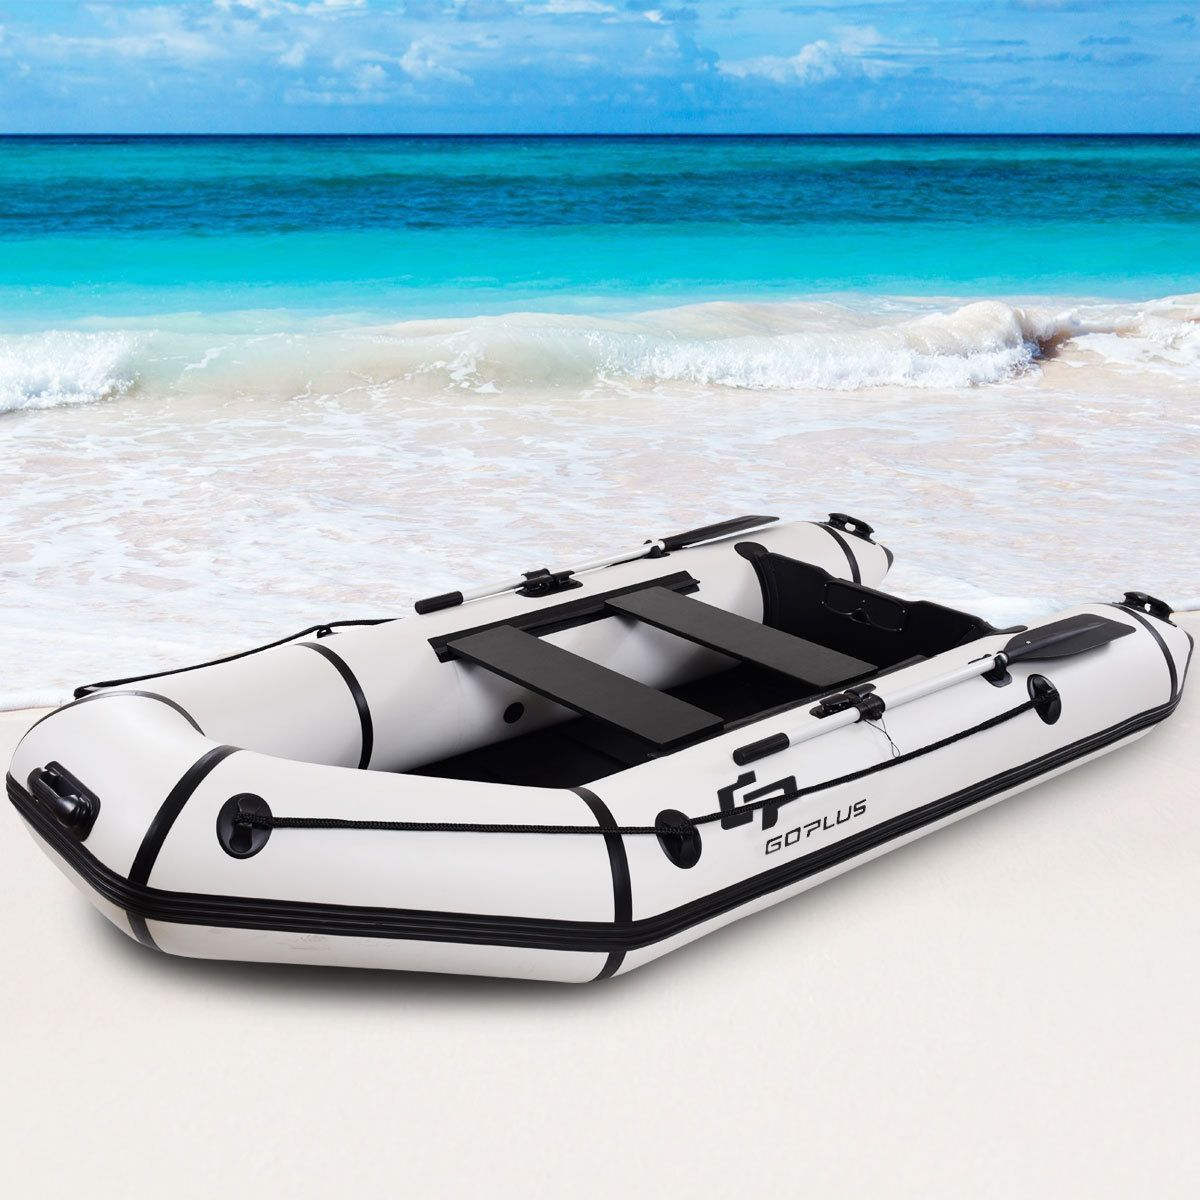 Sports & outdoors in 2020 Dinghy boat, Dinghy, Fishing boats